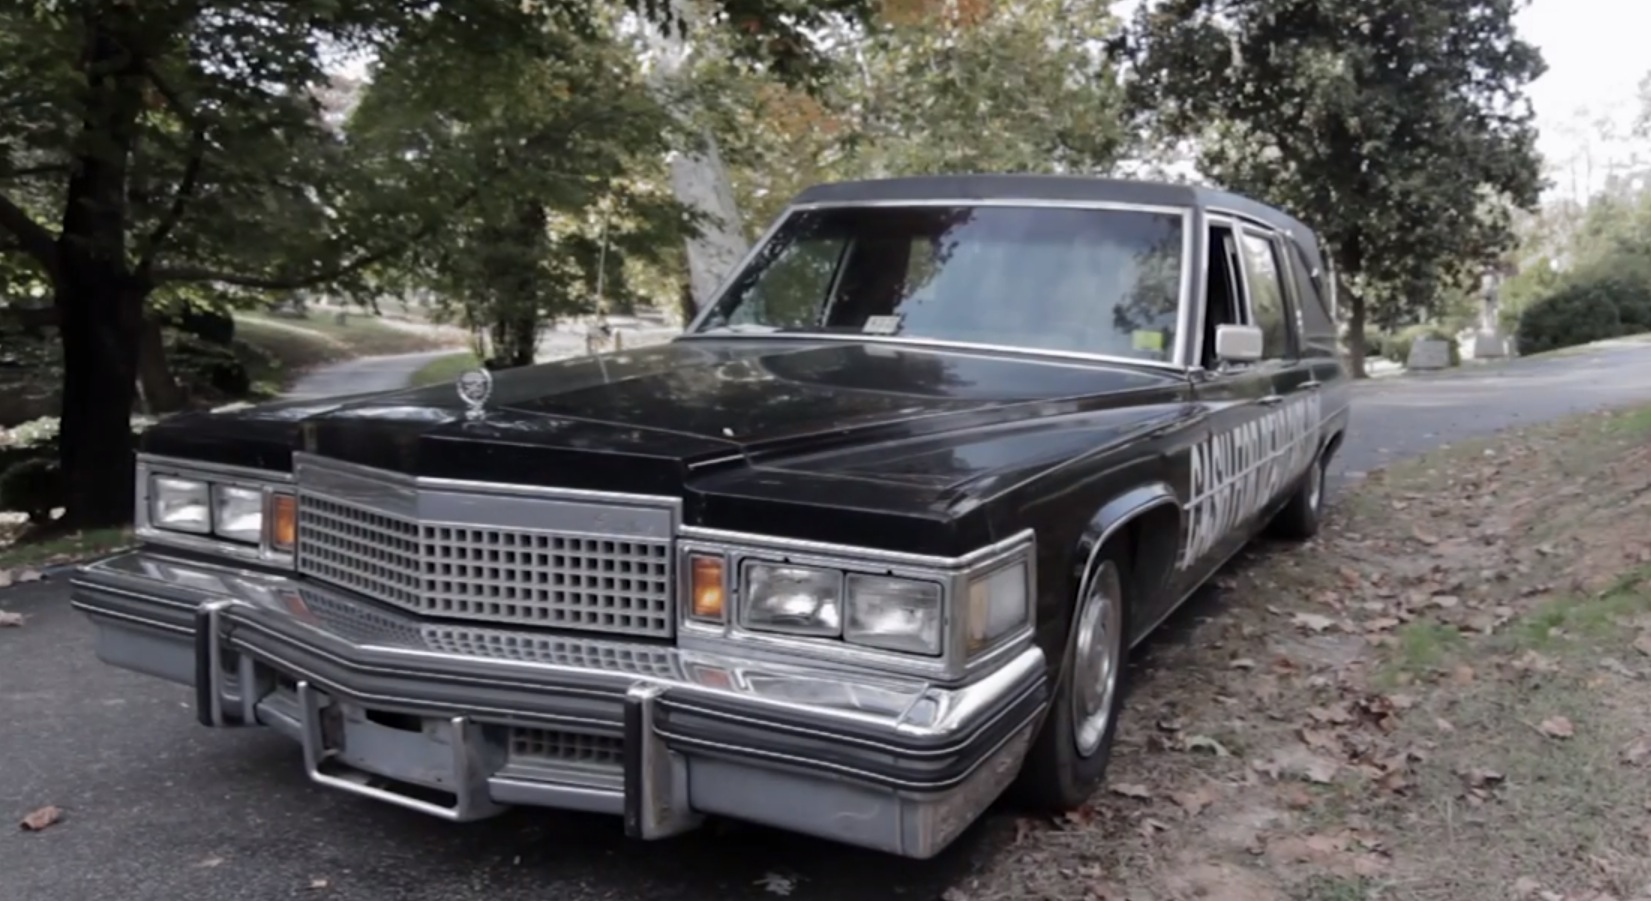 Why This 1979 Cadillac Hearse Is Better Than A Supercar